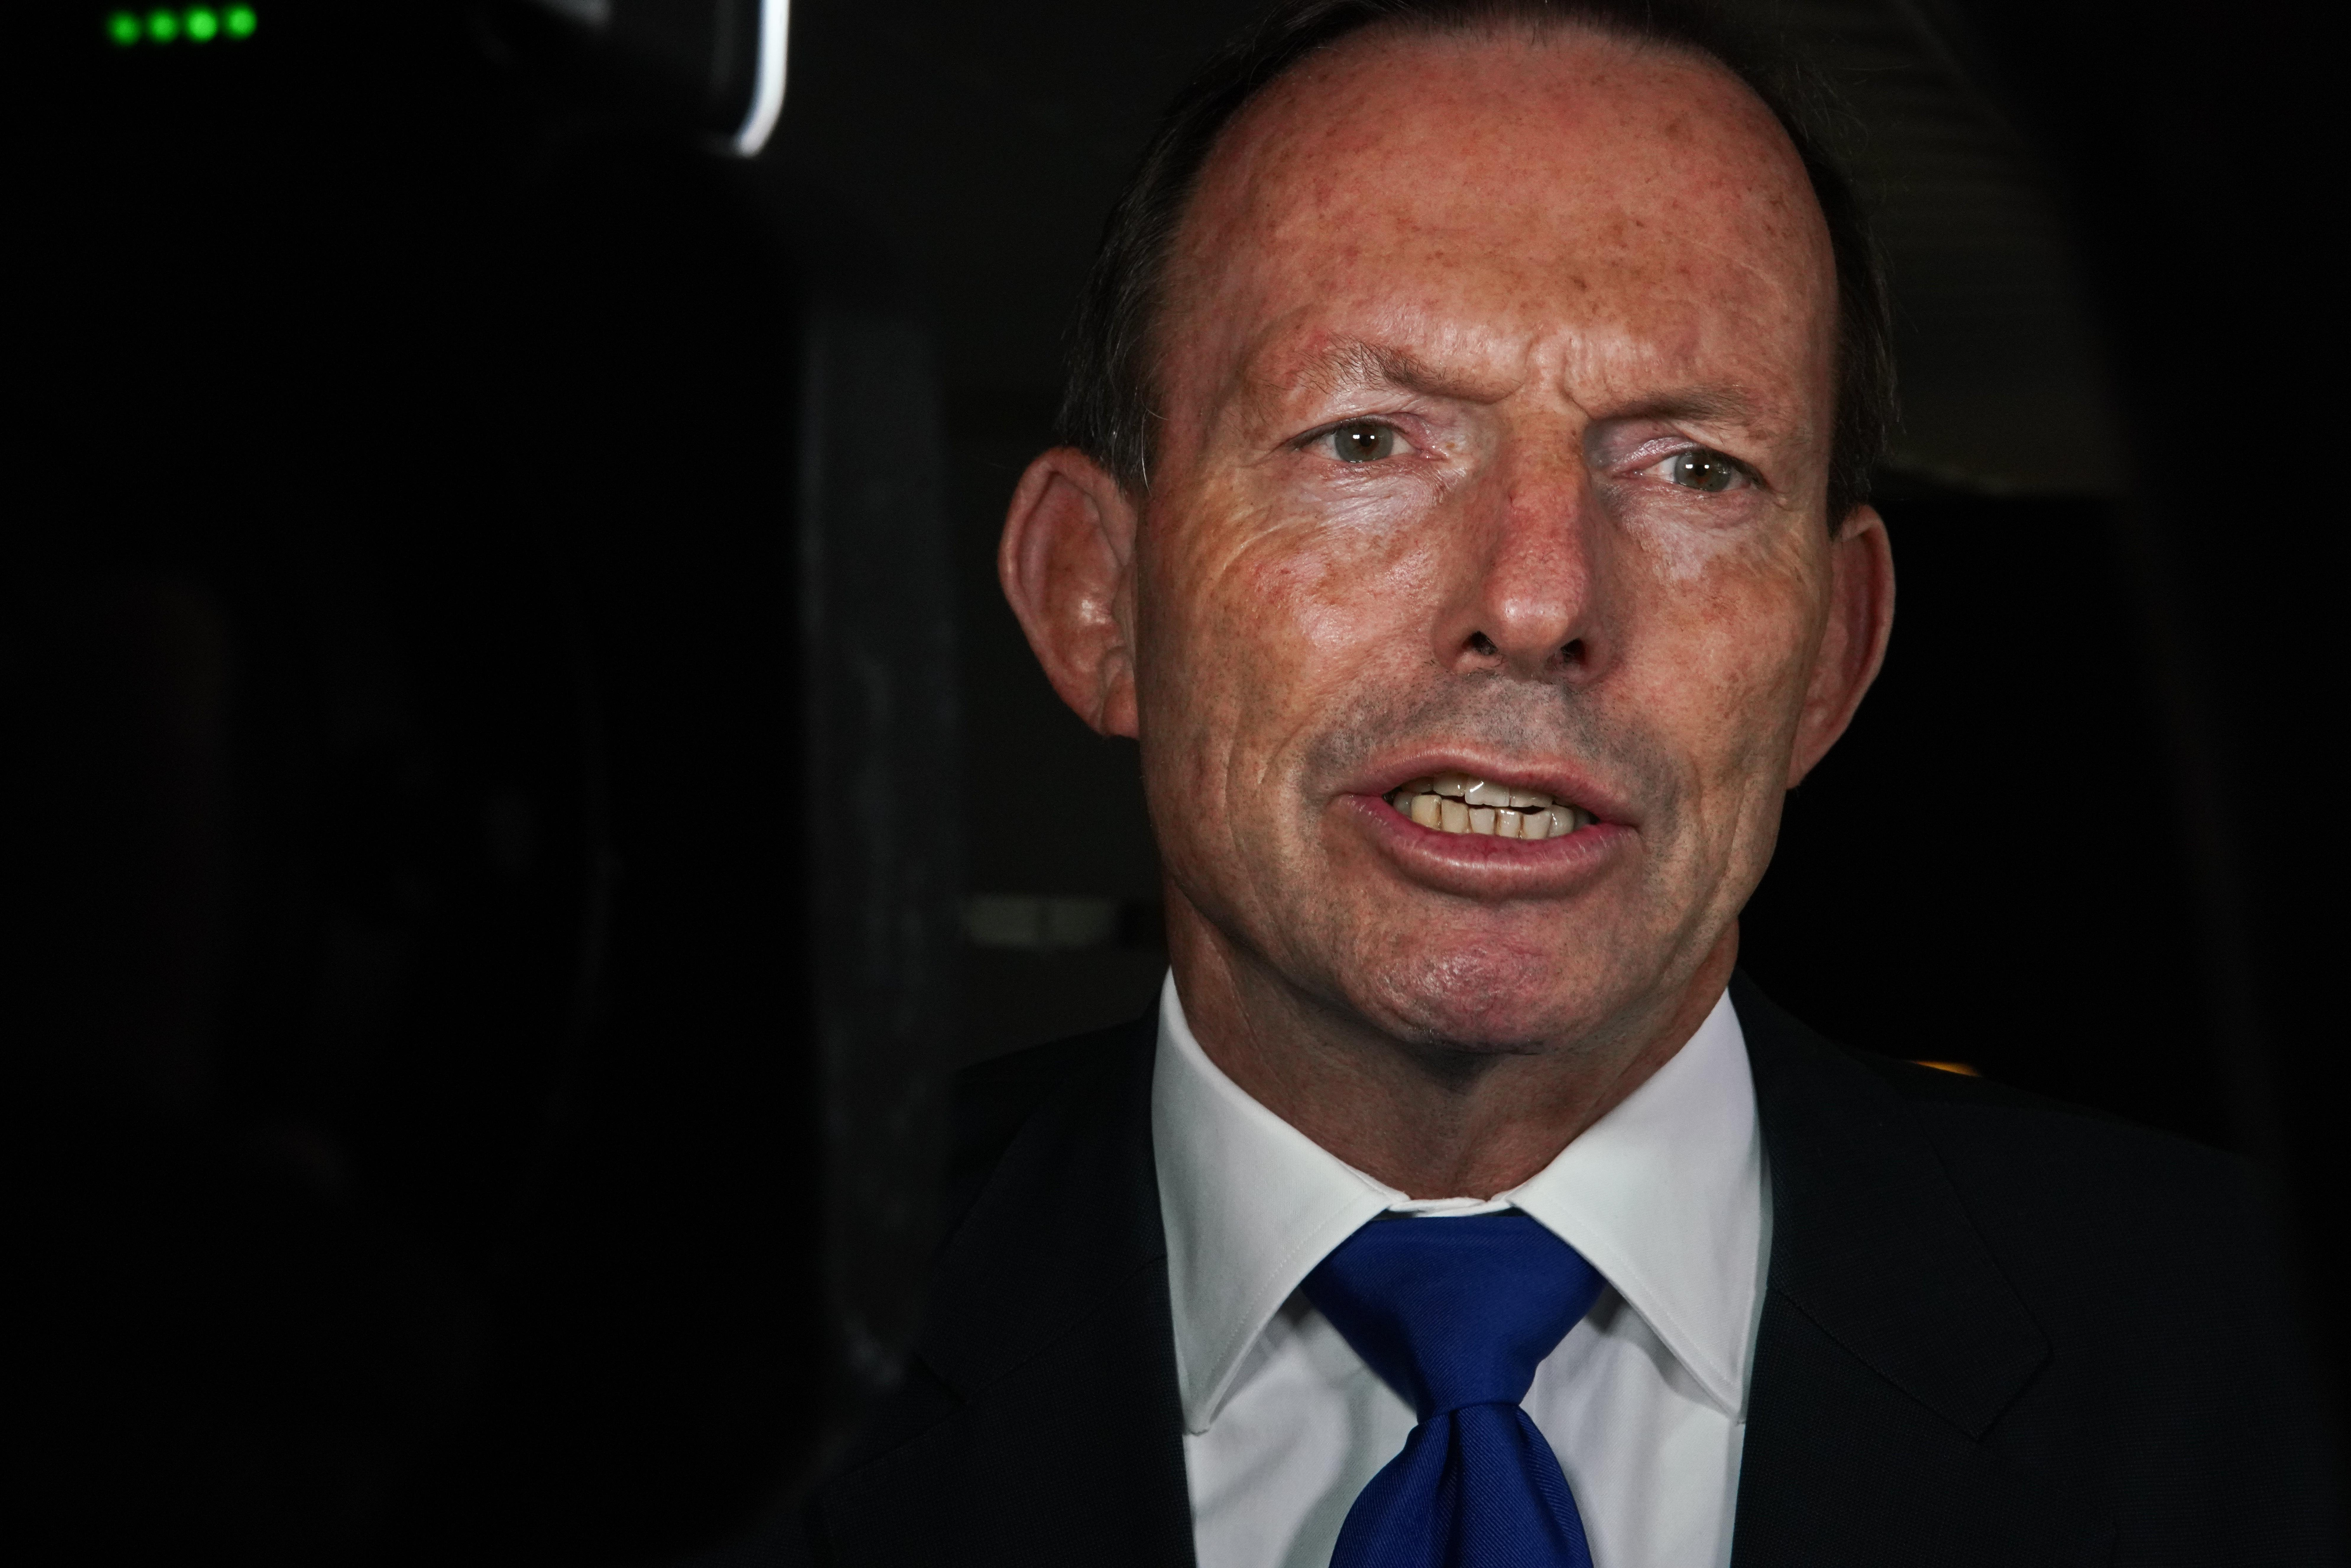 Tony Abbott's lament that prayer needs a greater role ignores a history of Christian invasion